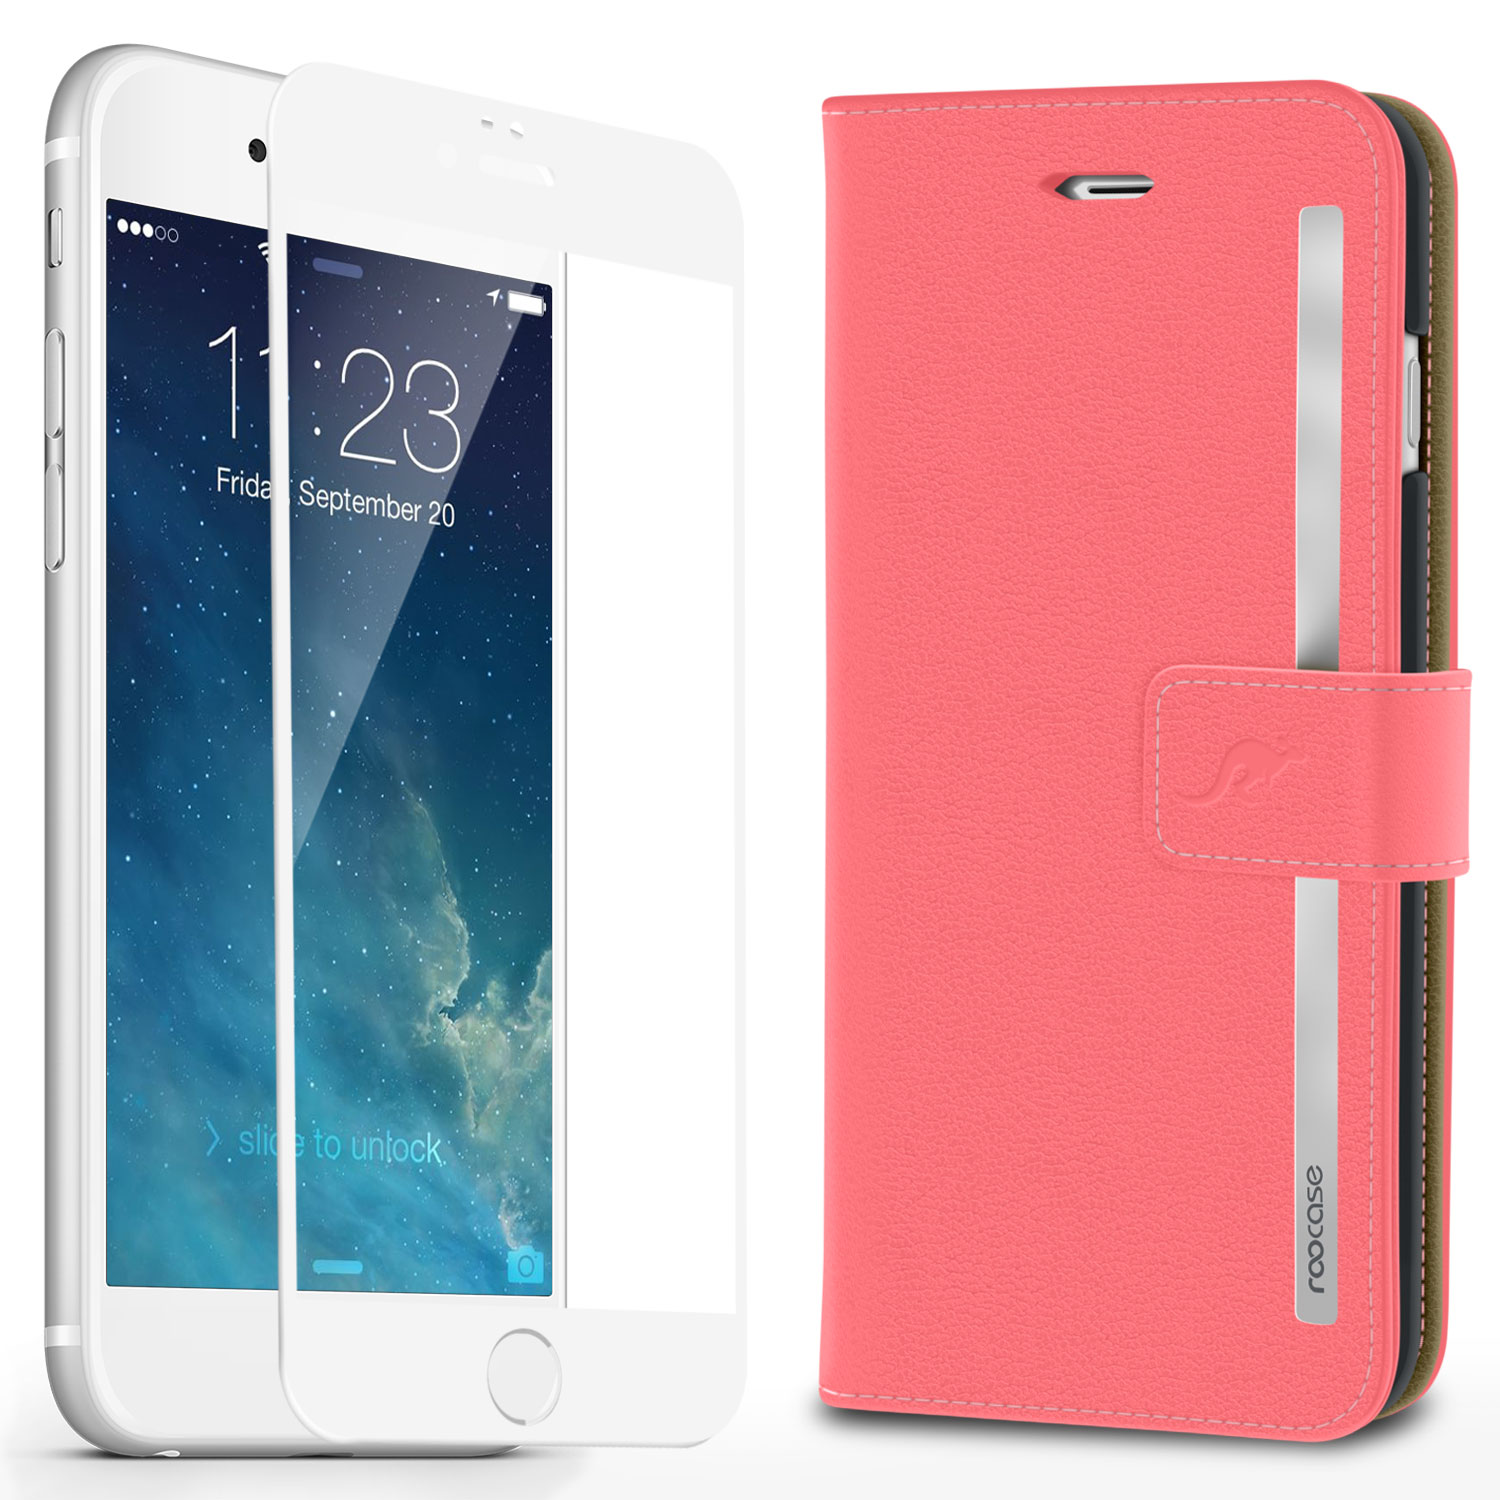 iPhone 6s Case, roocase [Prestige Folio] iPhone 6s Wallet Case Cover Card Holder with Full Screen Cover Tempered Glass (White Edge) for Apple iPhone 6s / 6 (2015), Pink